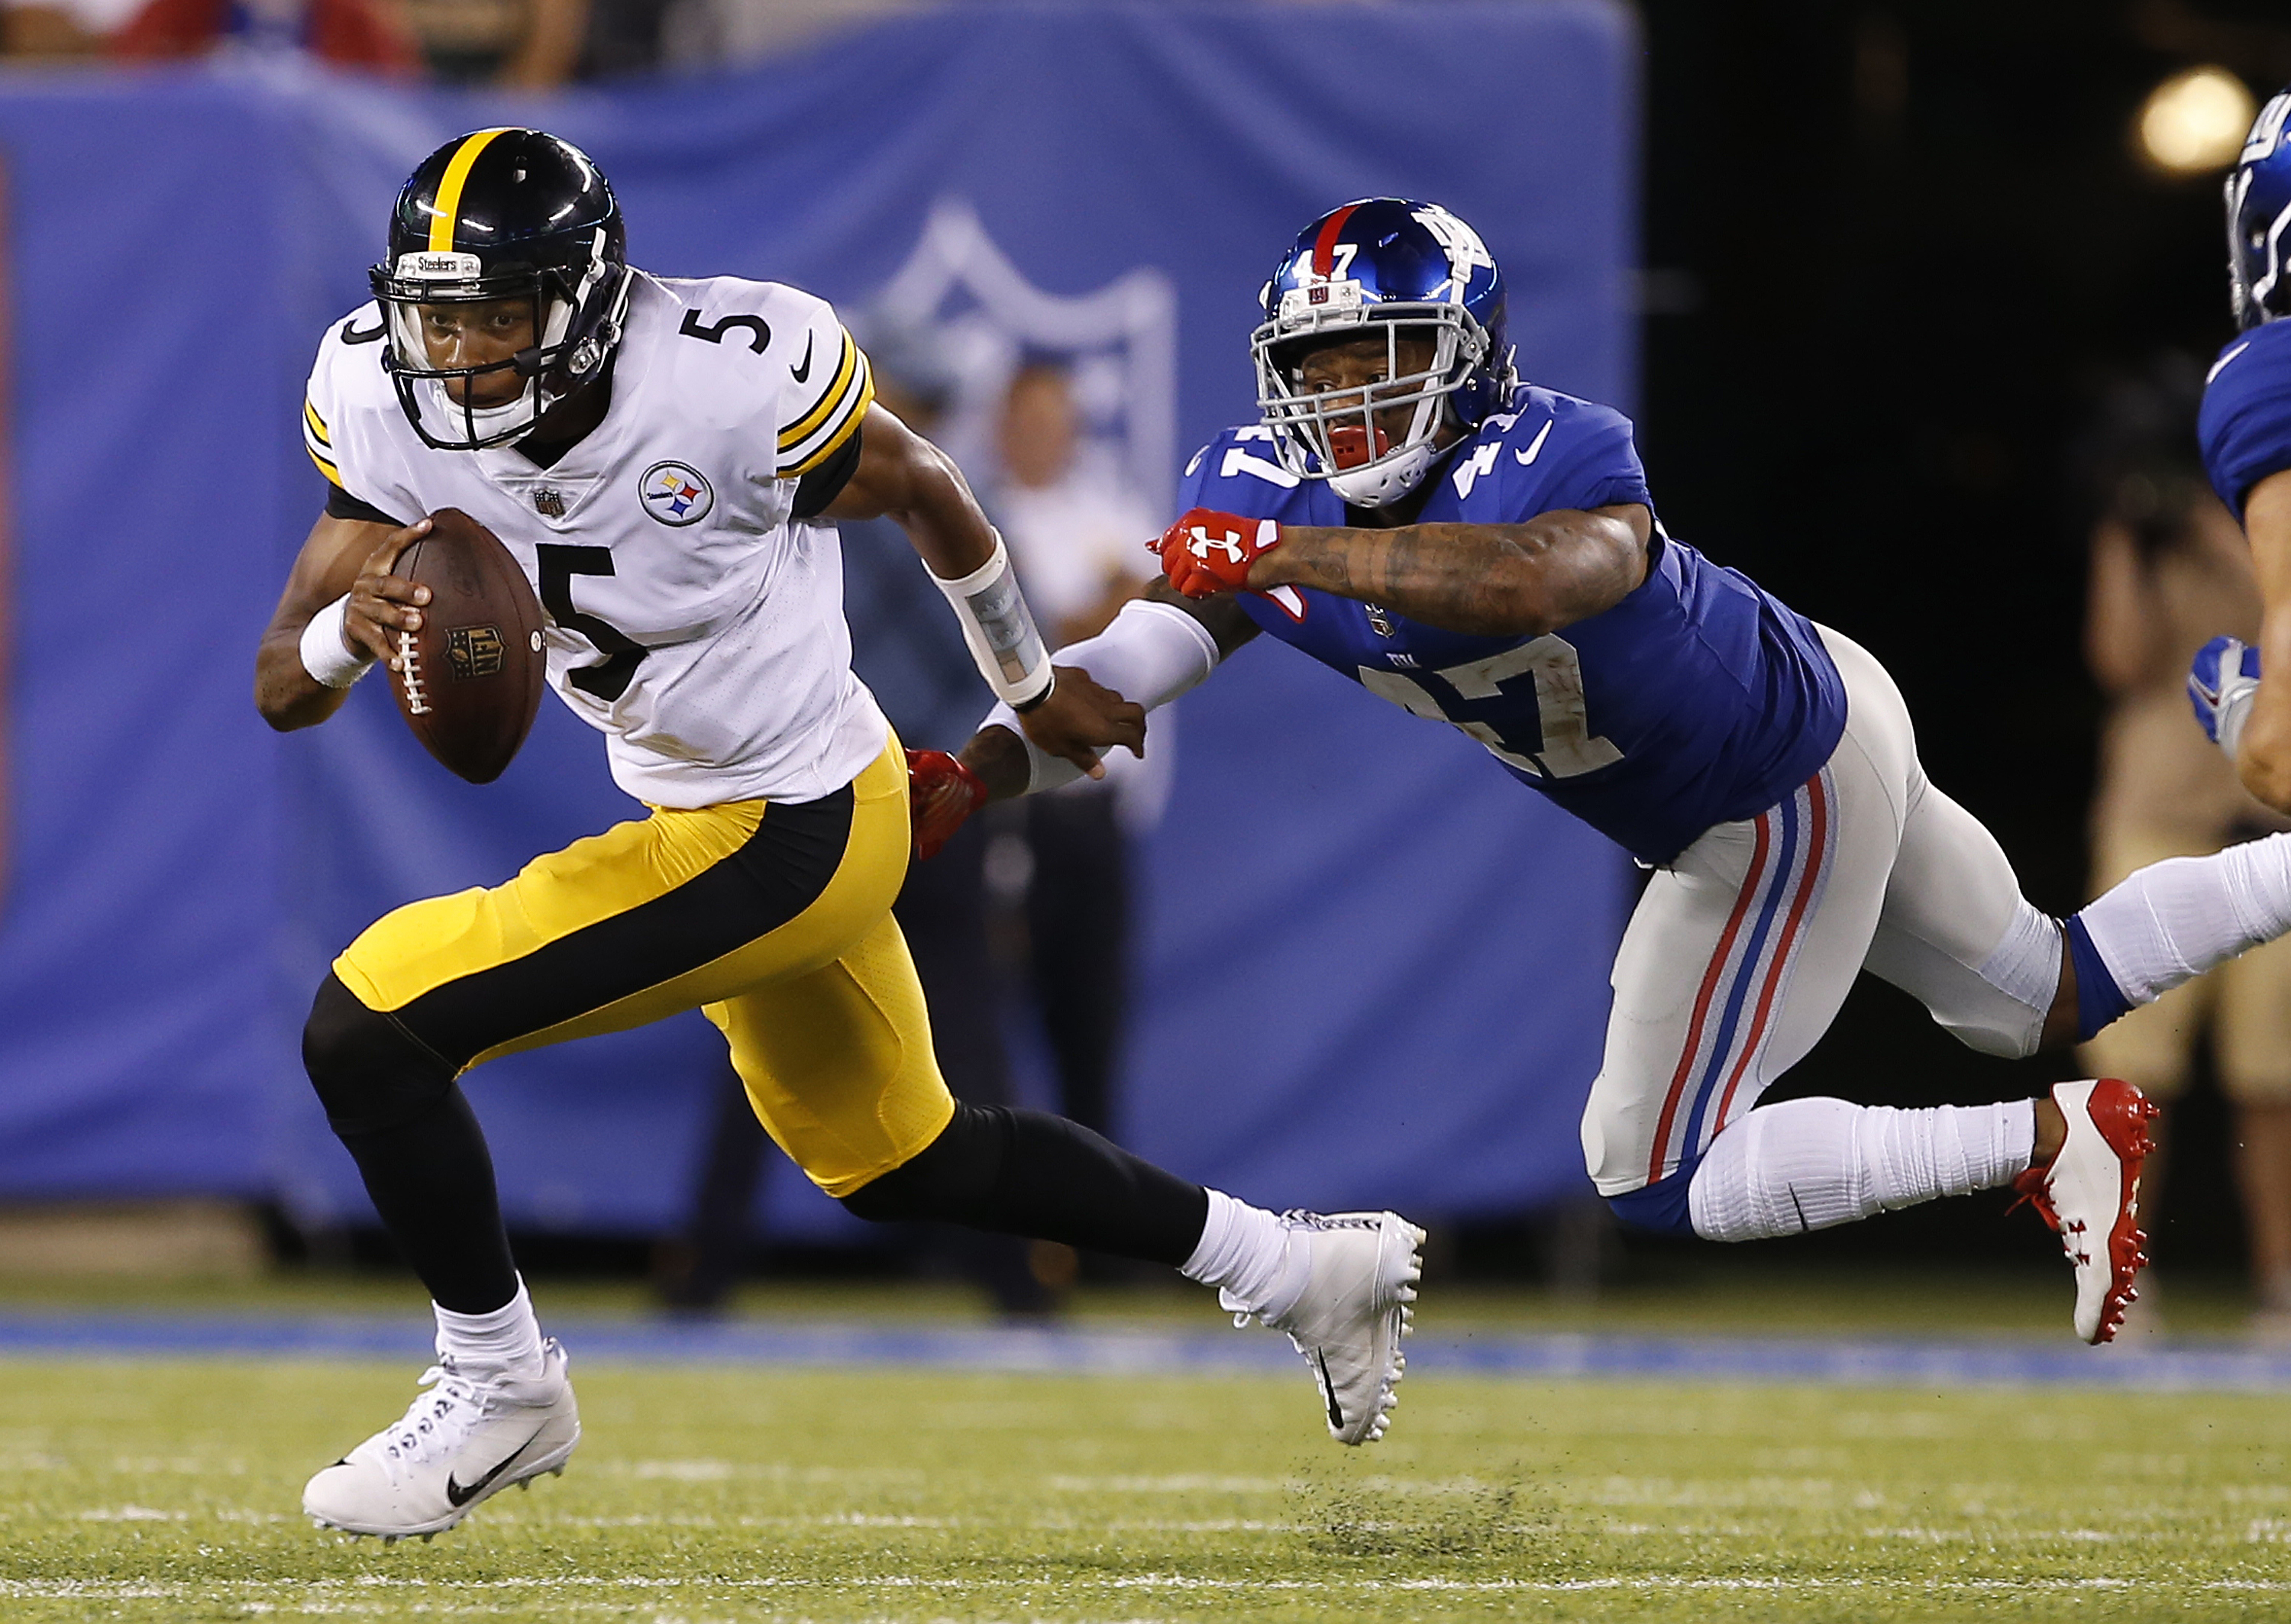 Falcons Vs. Steelers Live Stream